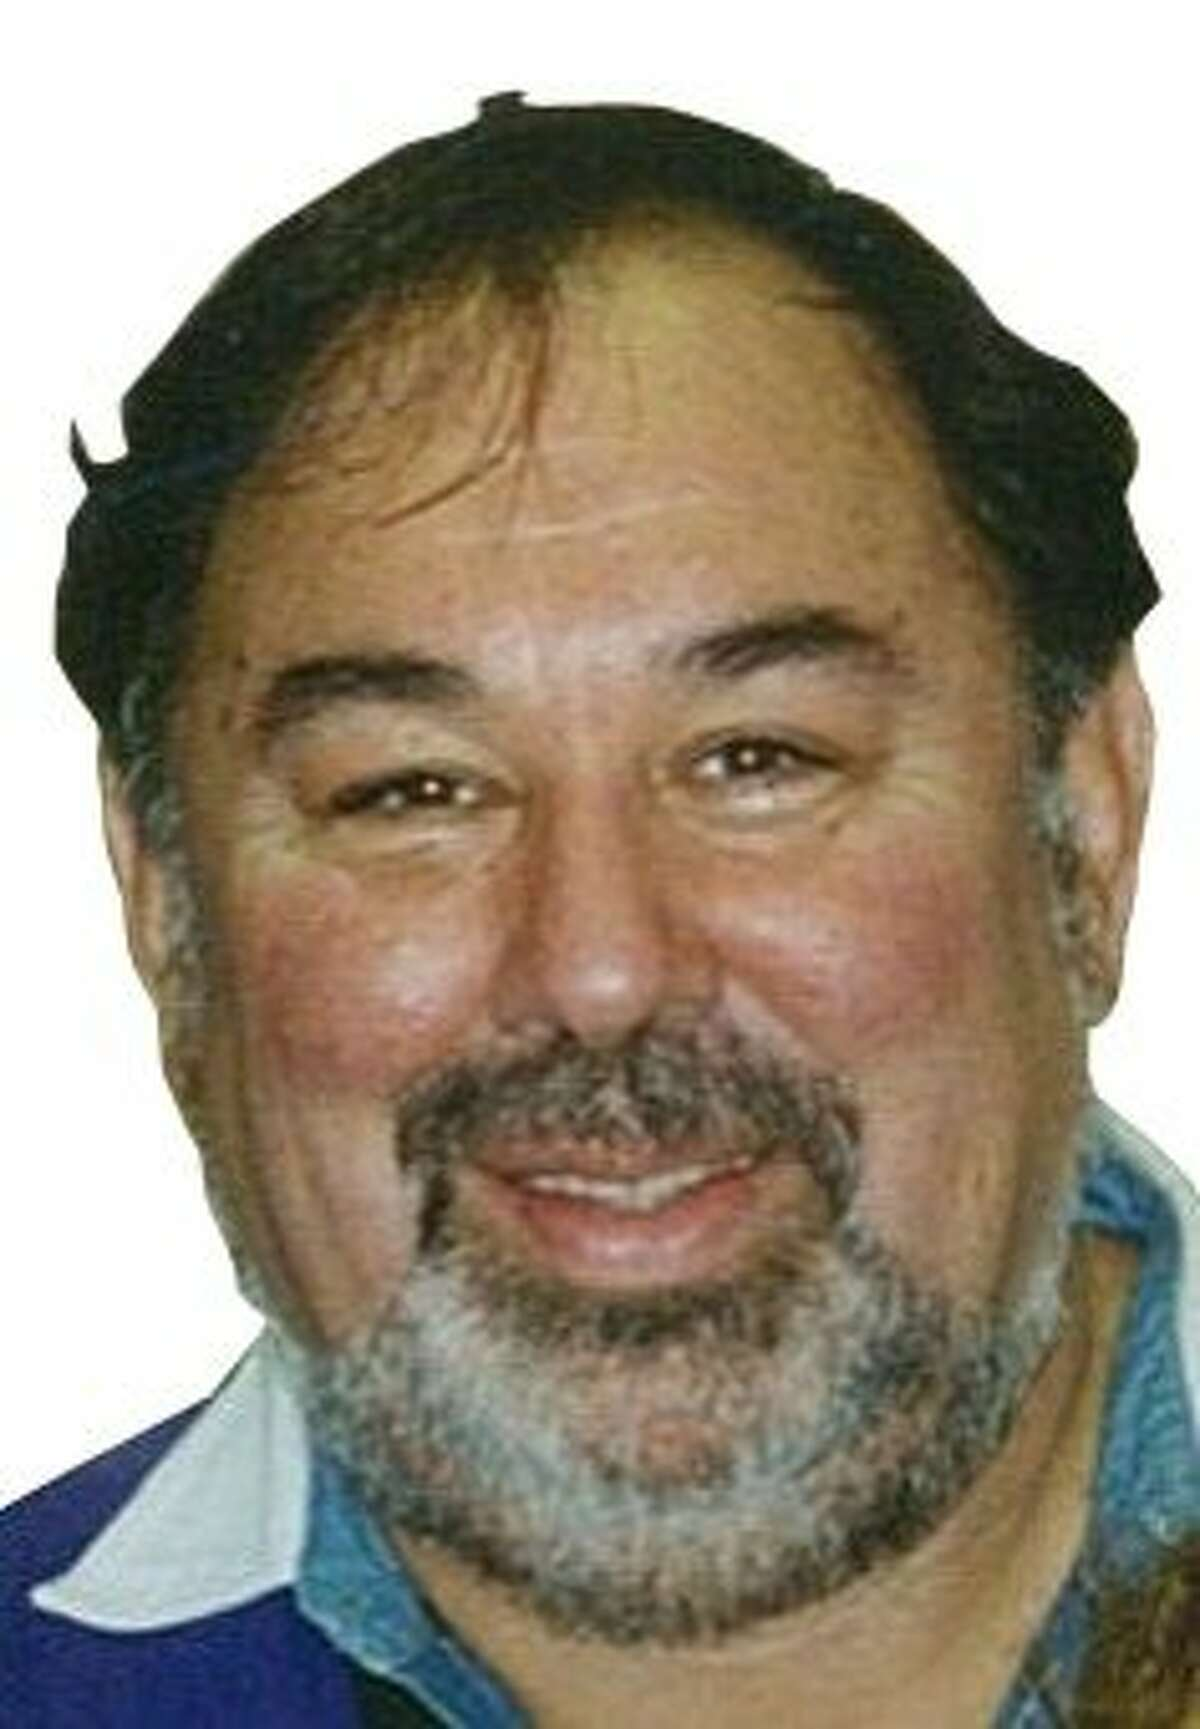 Dr. James Heinrich was an OB-GYN at California?•s Valley State Prison for Women through December 2012.